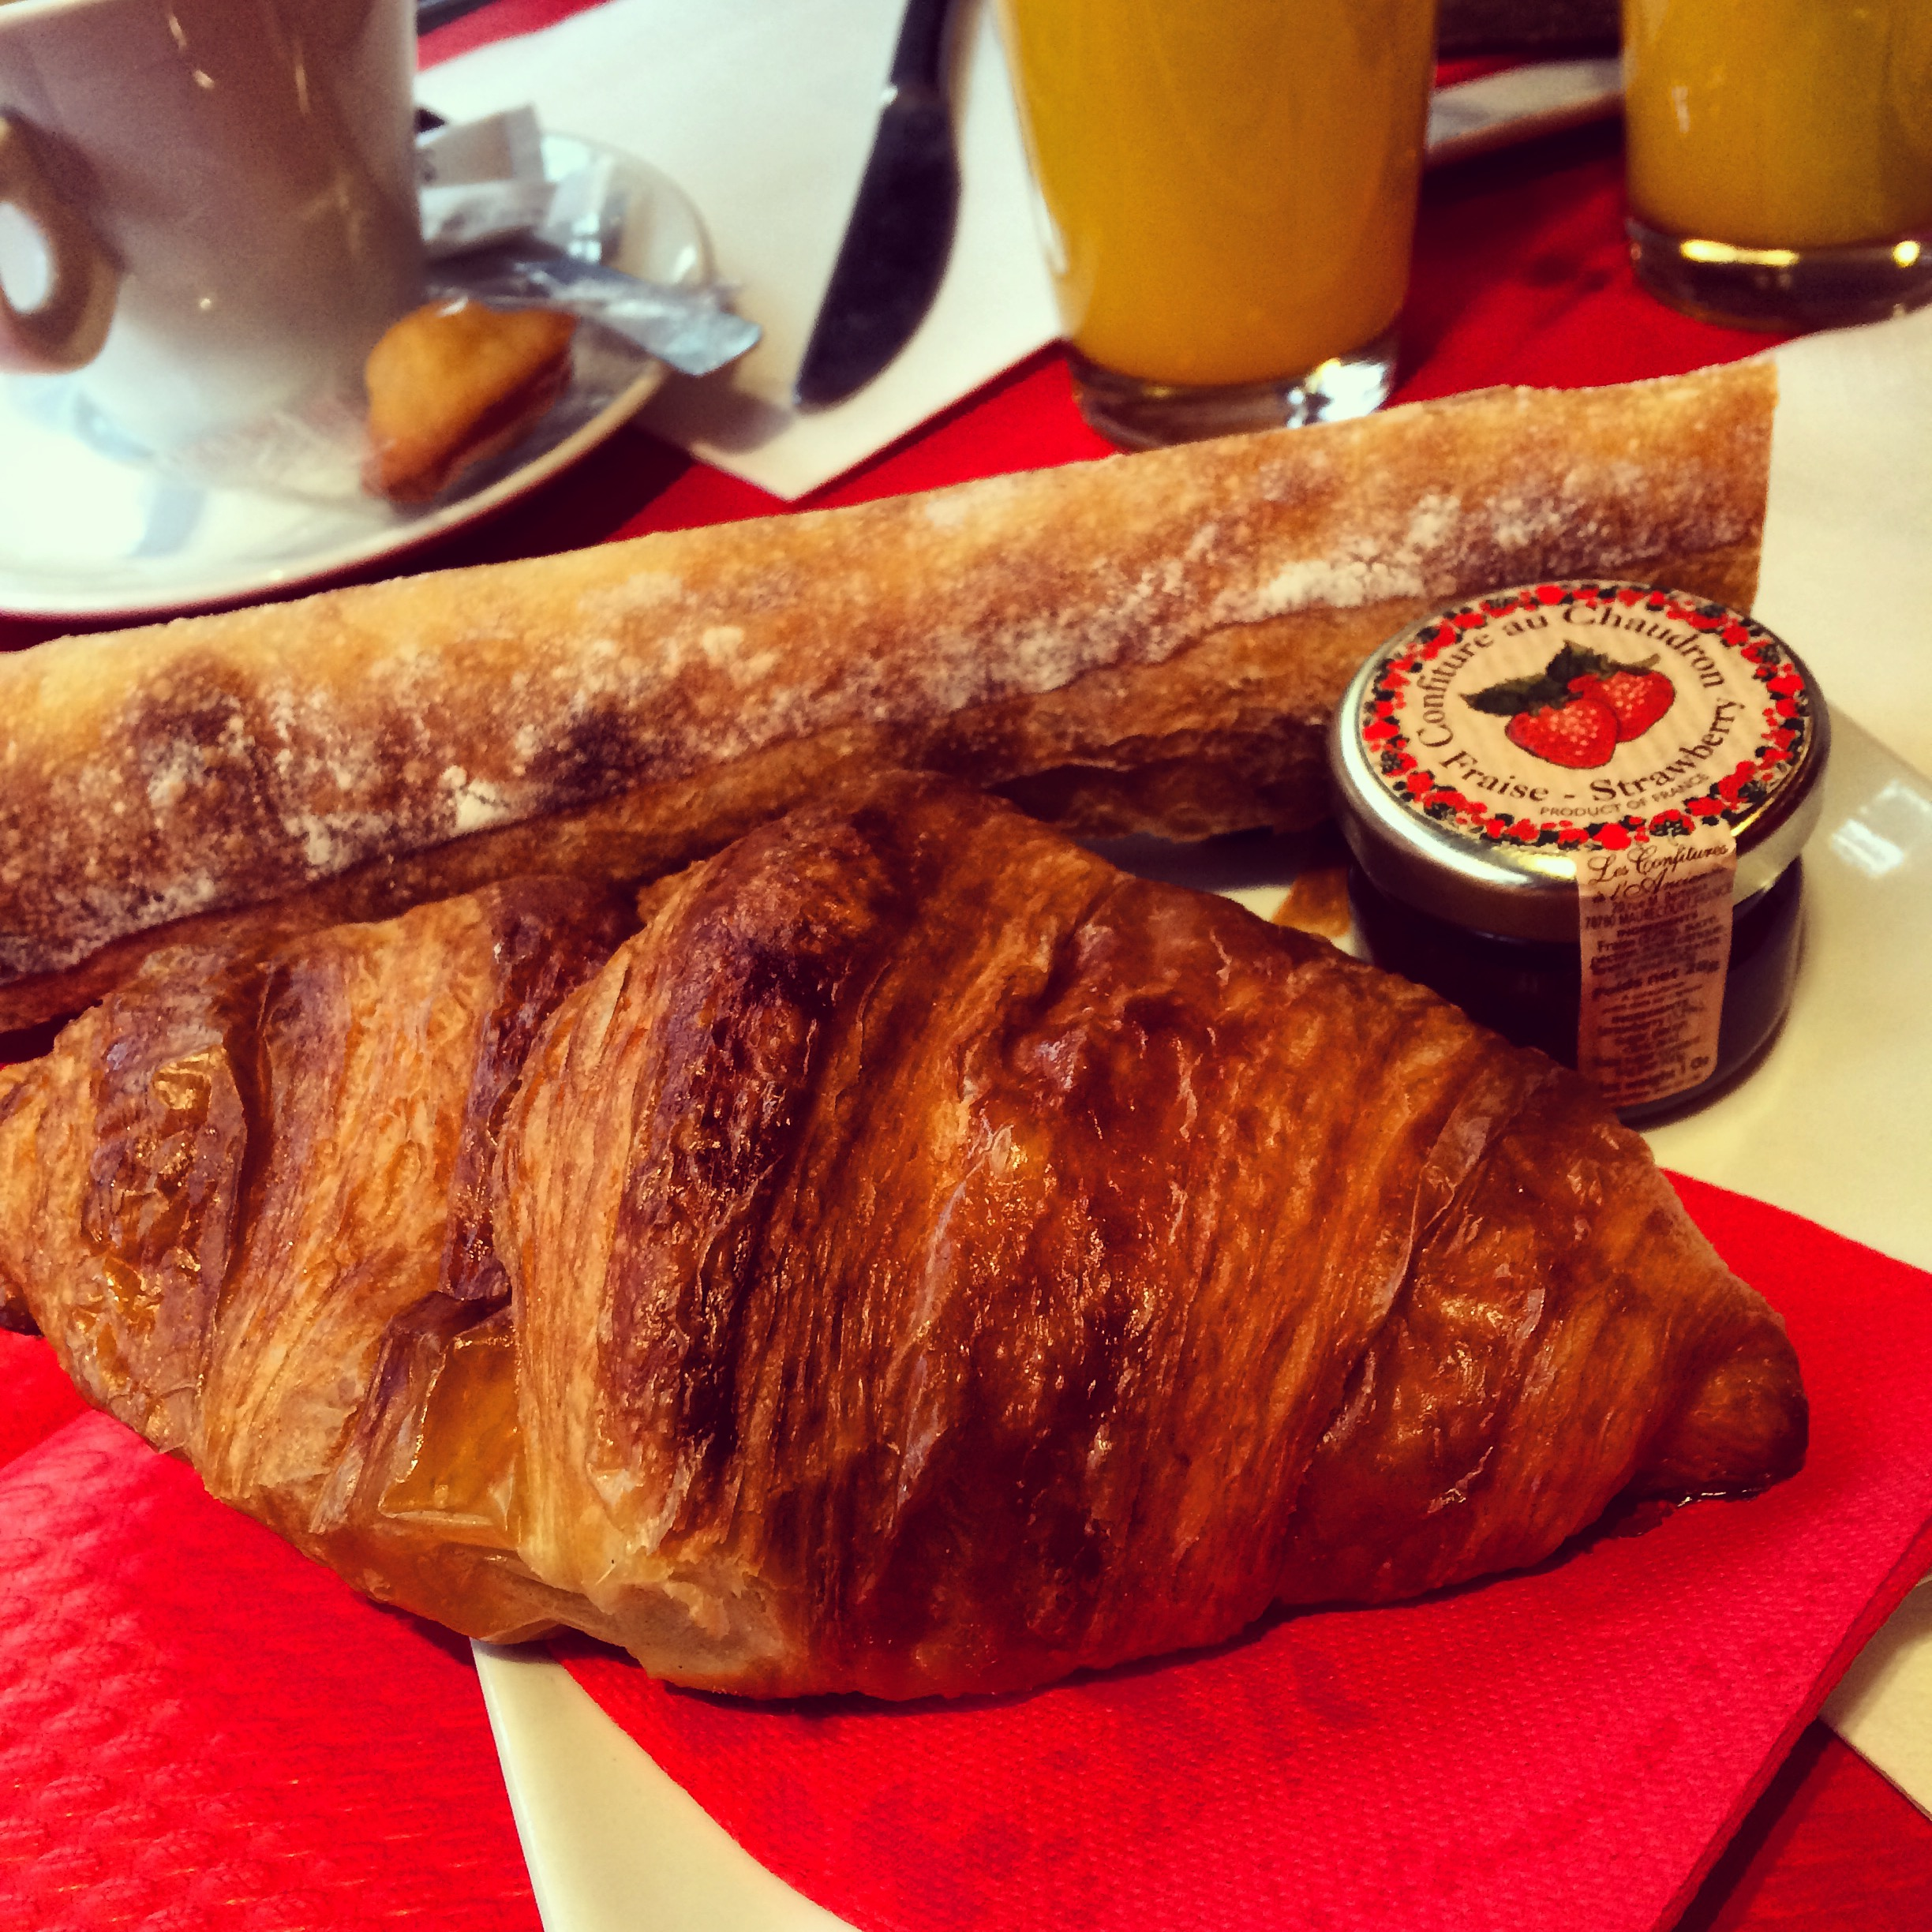 When I was in Paris I ate bread and croissants every morning